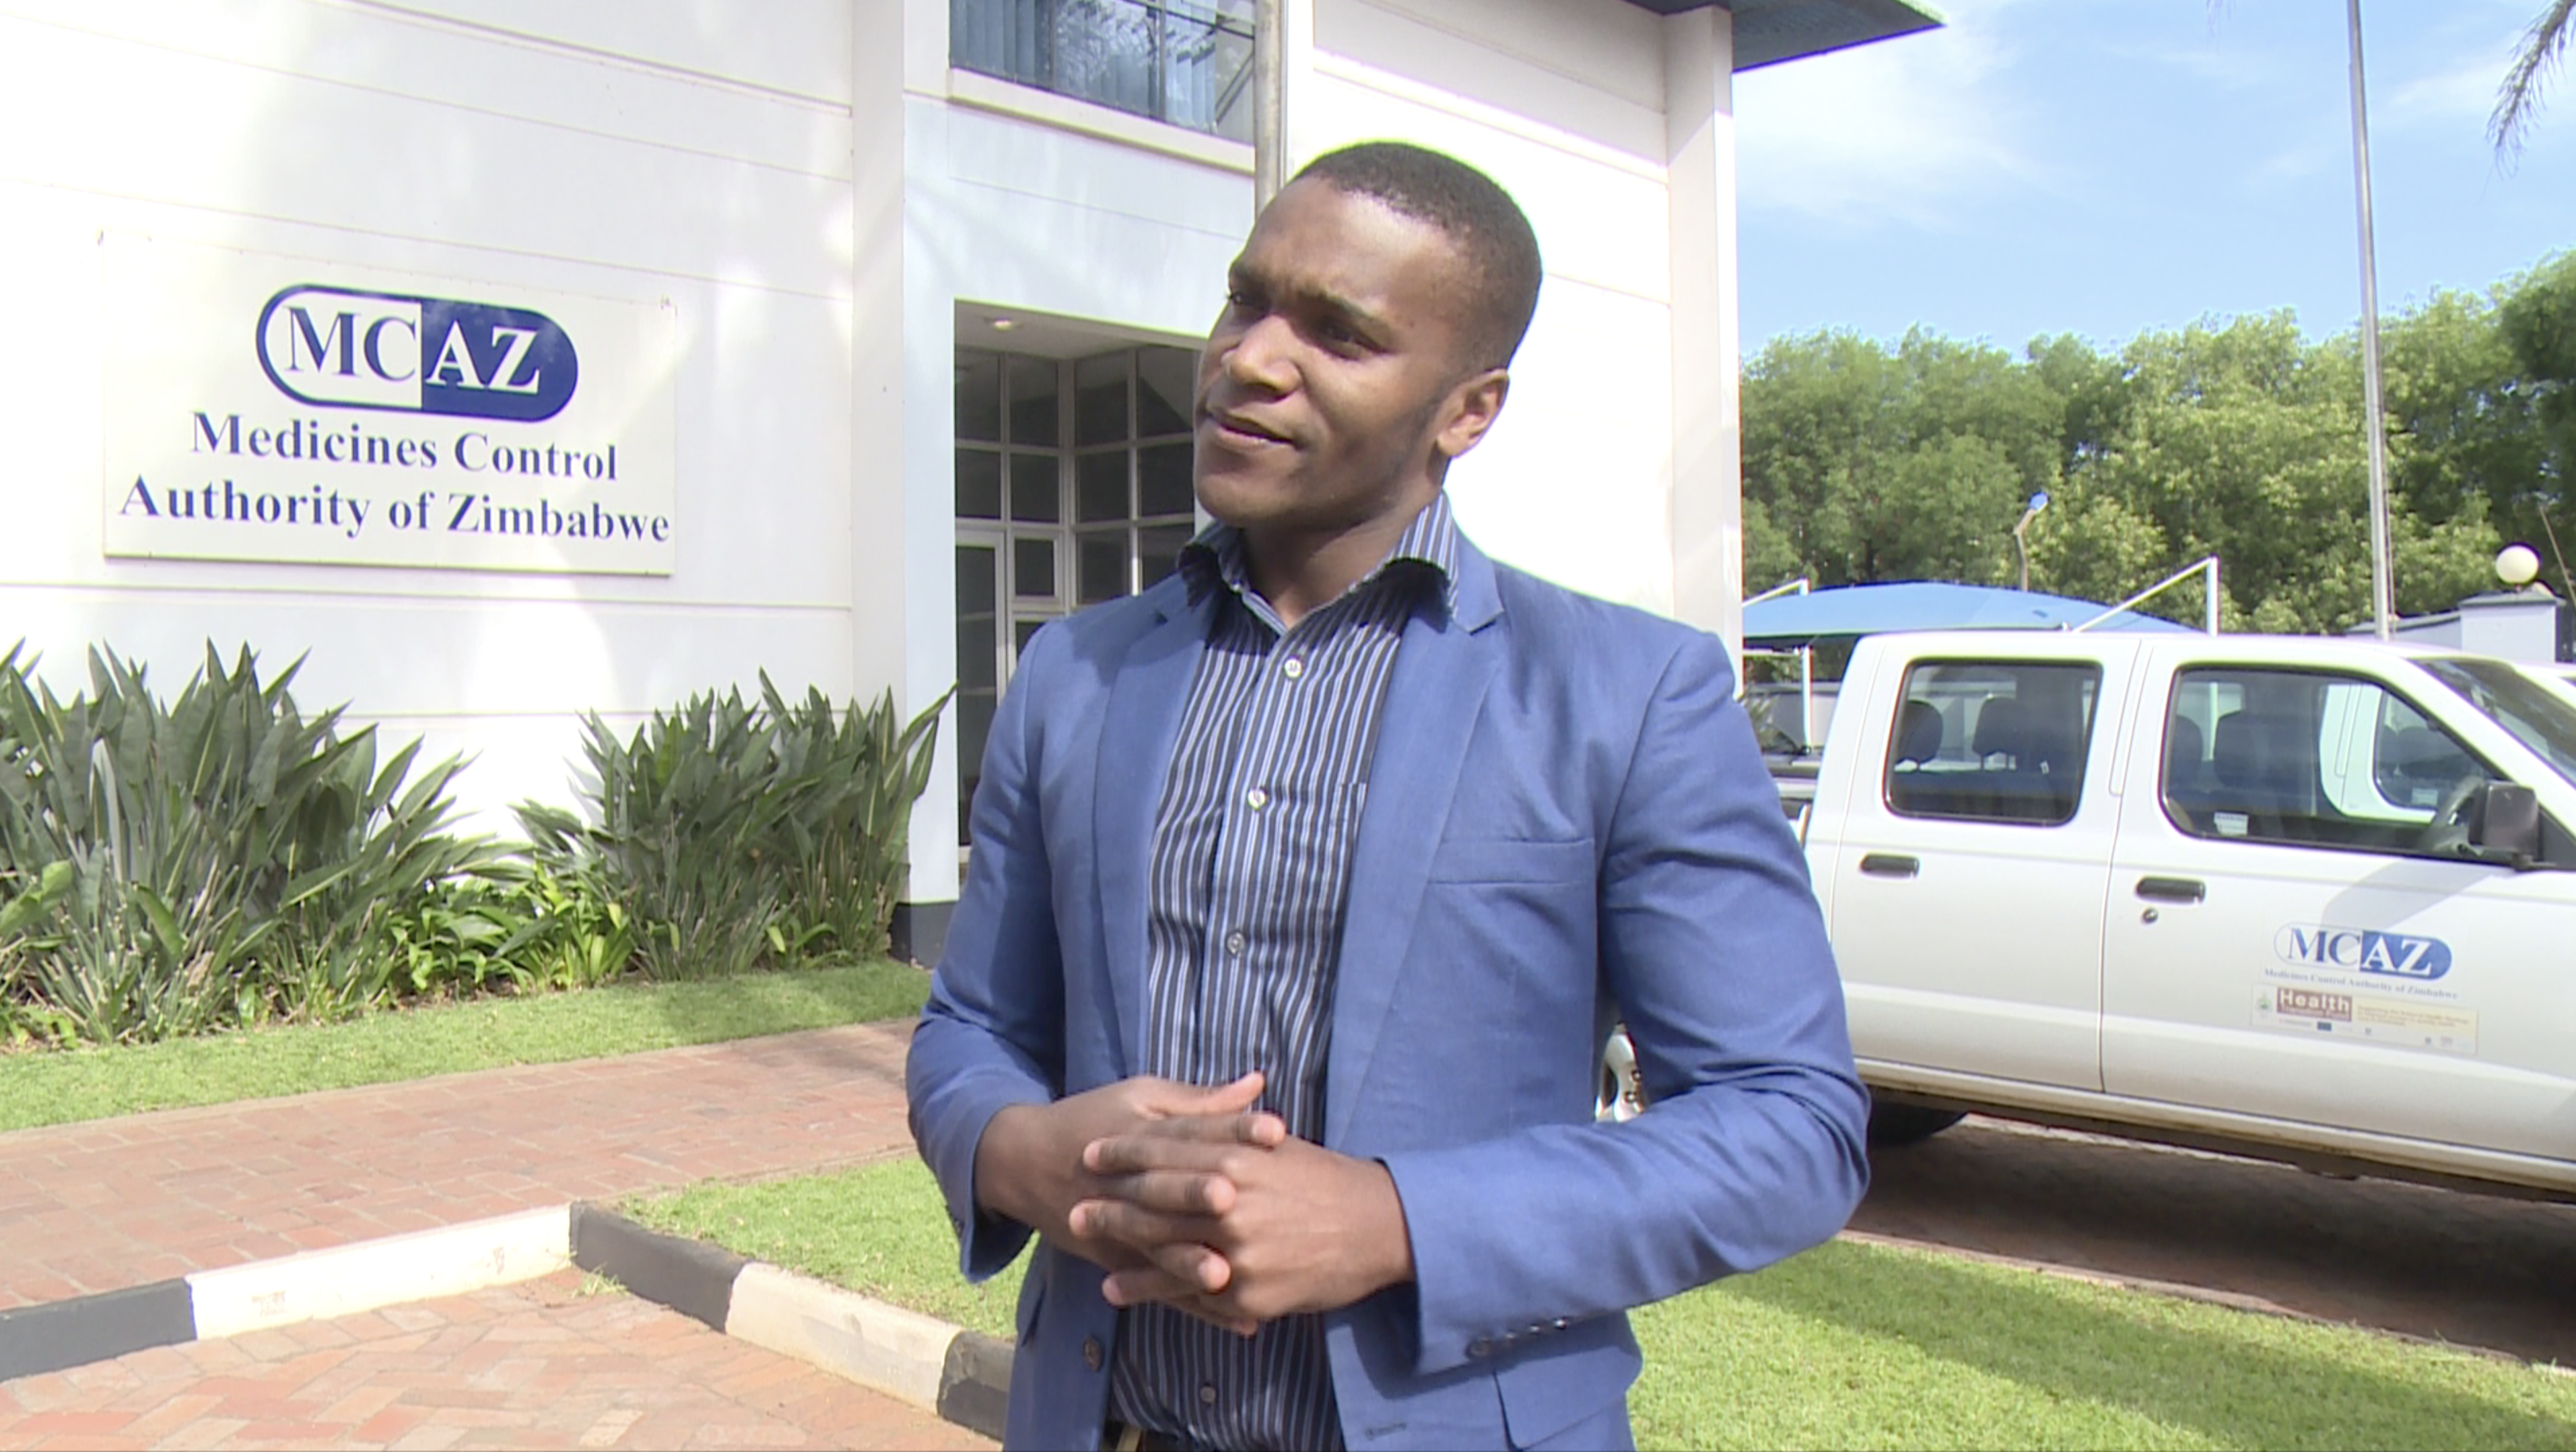 Shingai Douglas Gwatidzo, the Medicines Control Authority of Zimbabwe spokesman warns citizens against seeking out black market medical drugs.